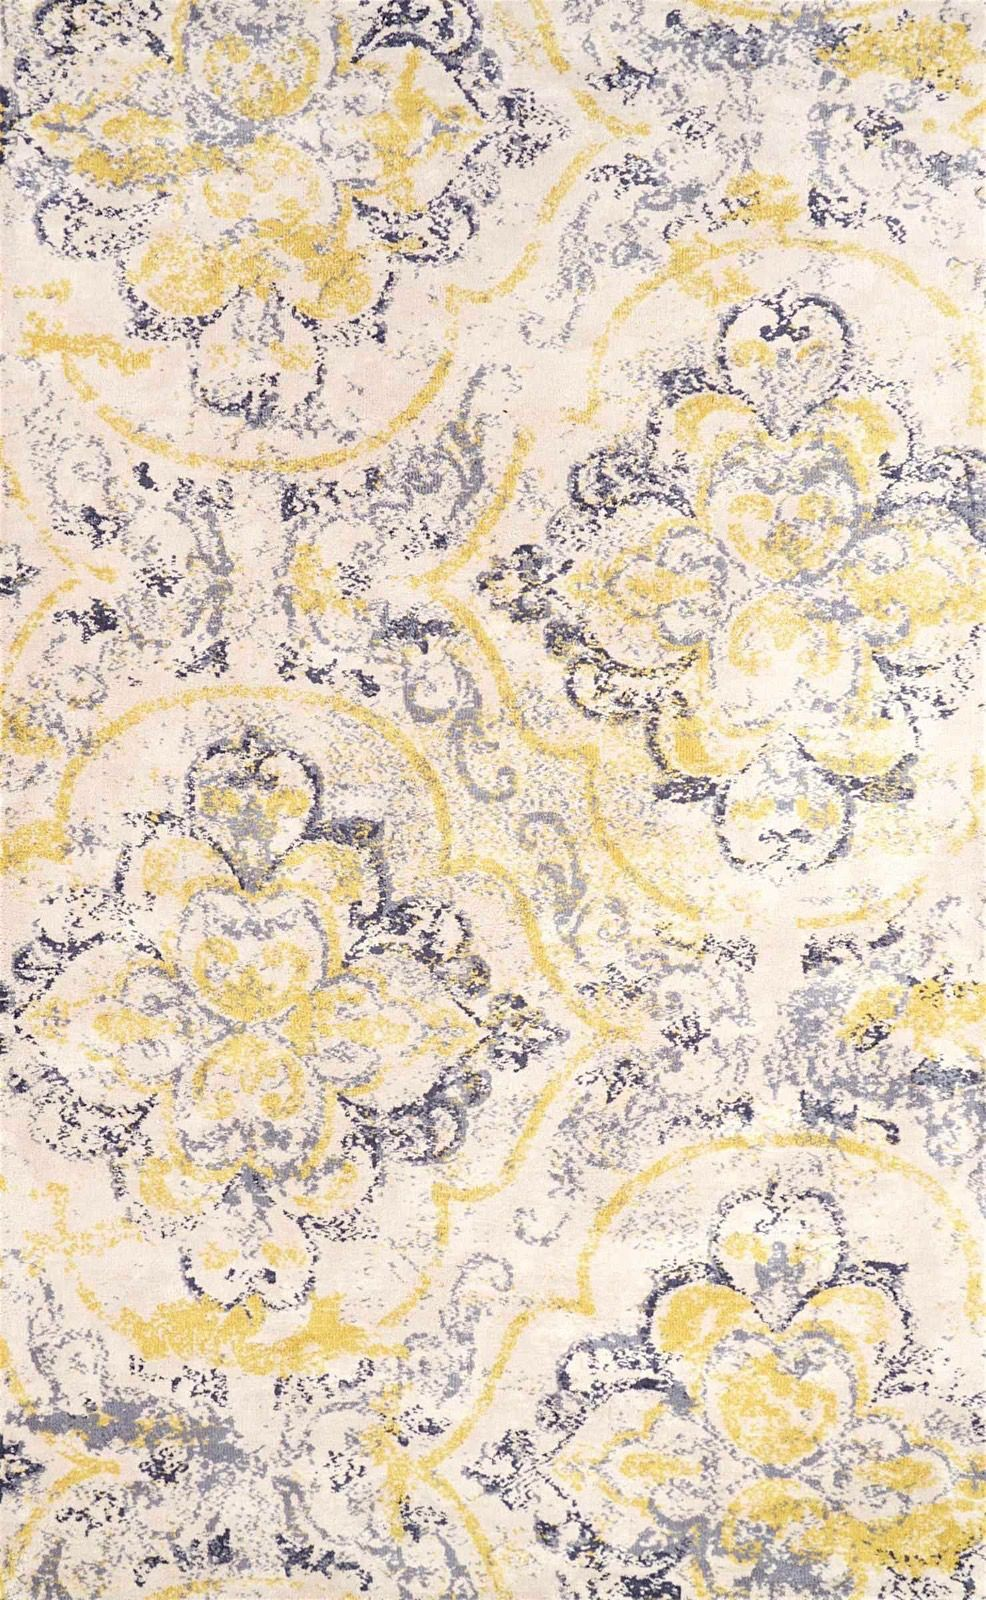 nuloom radiante wash country & floral area rug collection